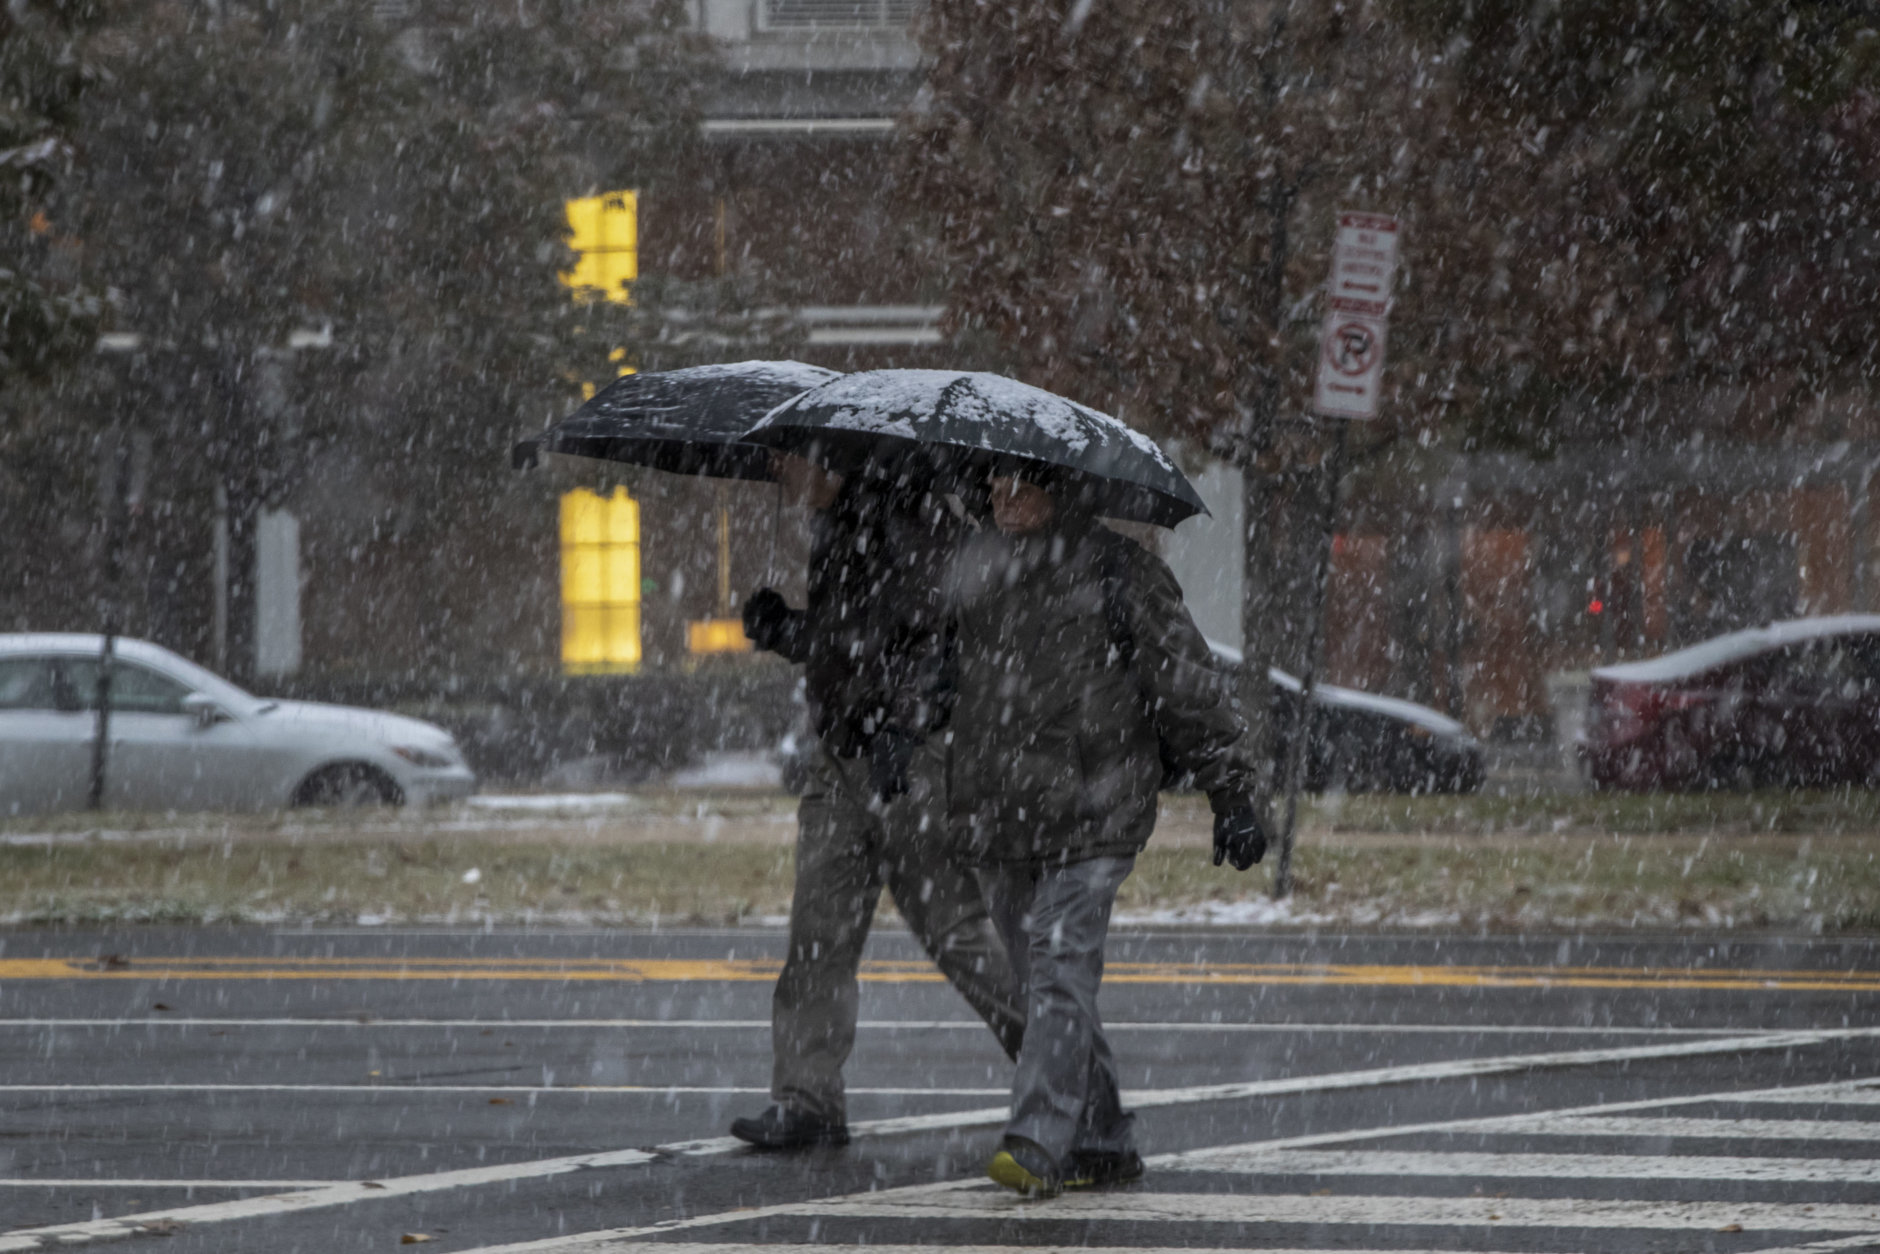 The first snow of the season in Washington, Thursday, Nov. 15, 2018. (AP Photo/J. Scott Applewhite)